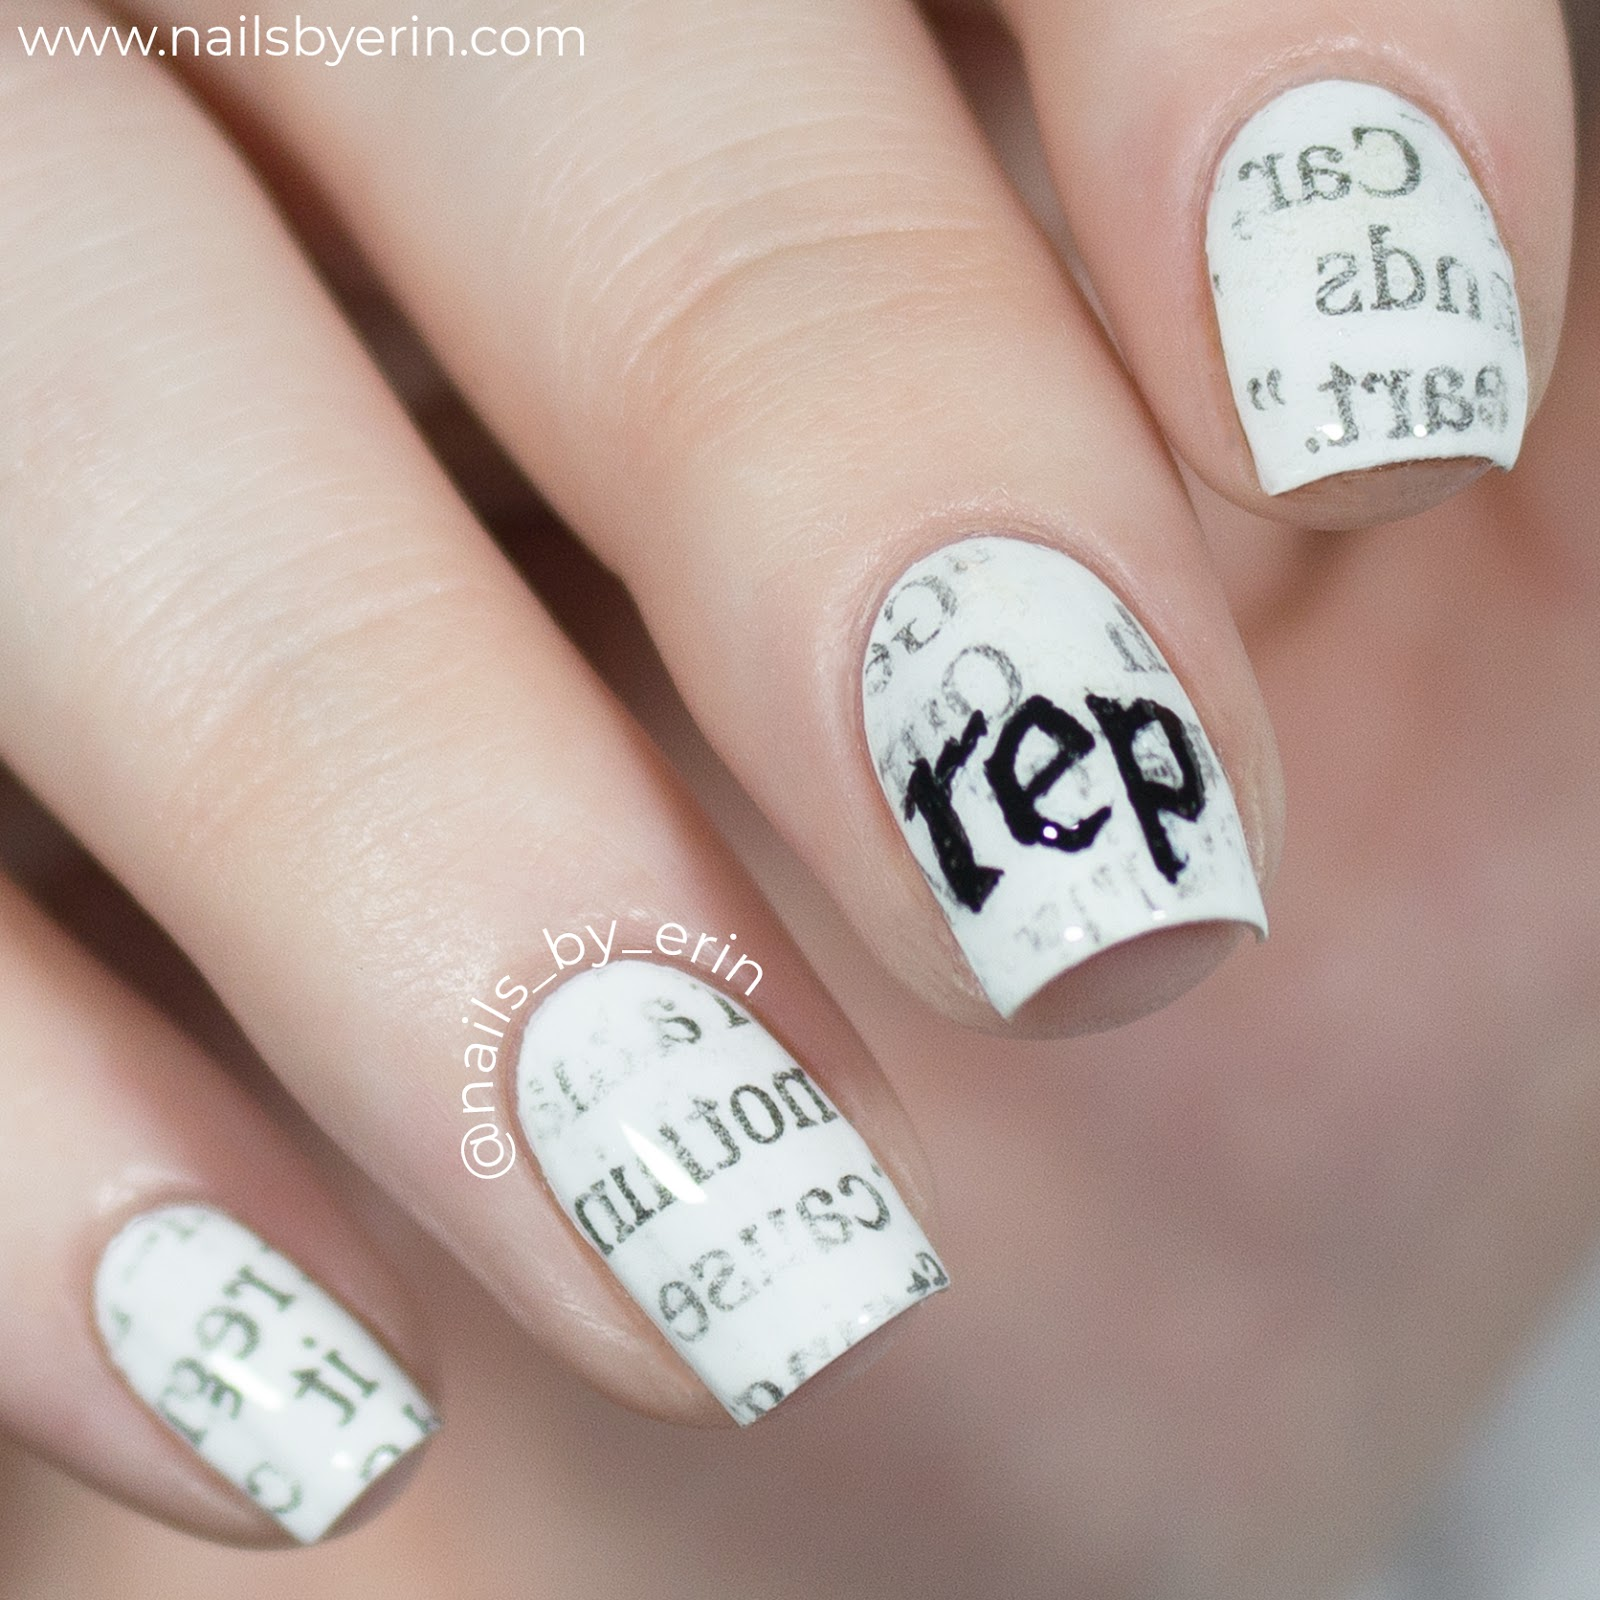 Her Al Artwork Reminded Me So Much Of Newspaper I Decided The Easiest Way To Recreate This Look Would Be With Nail Art